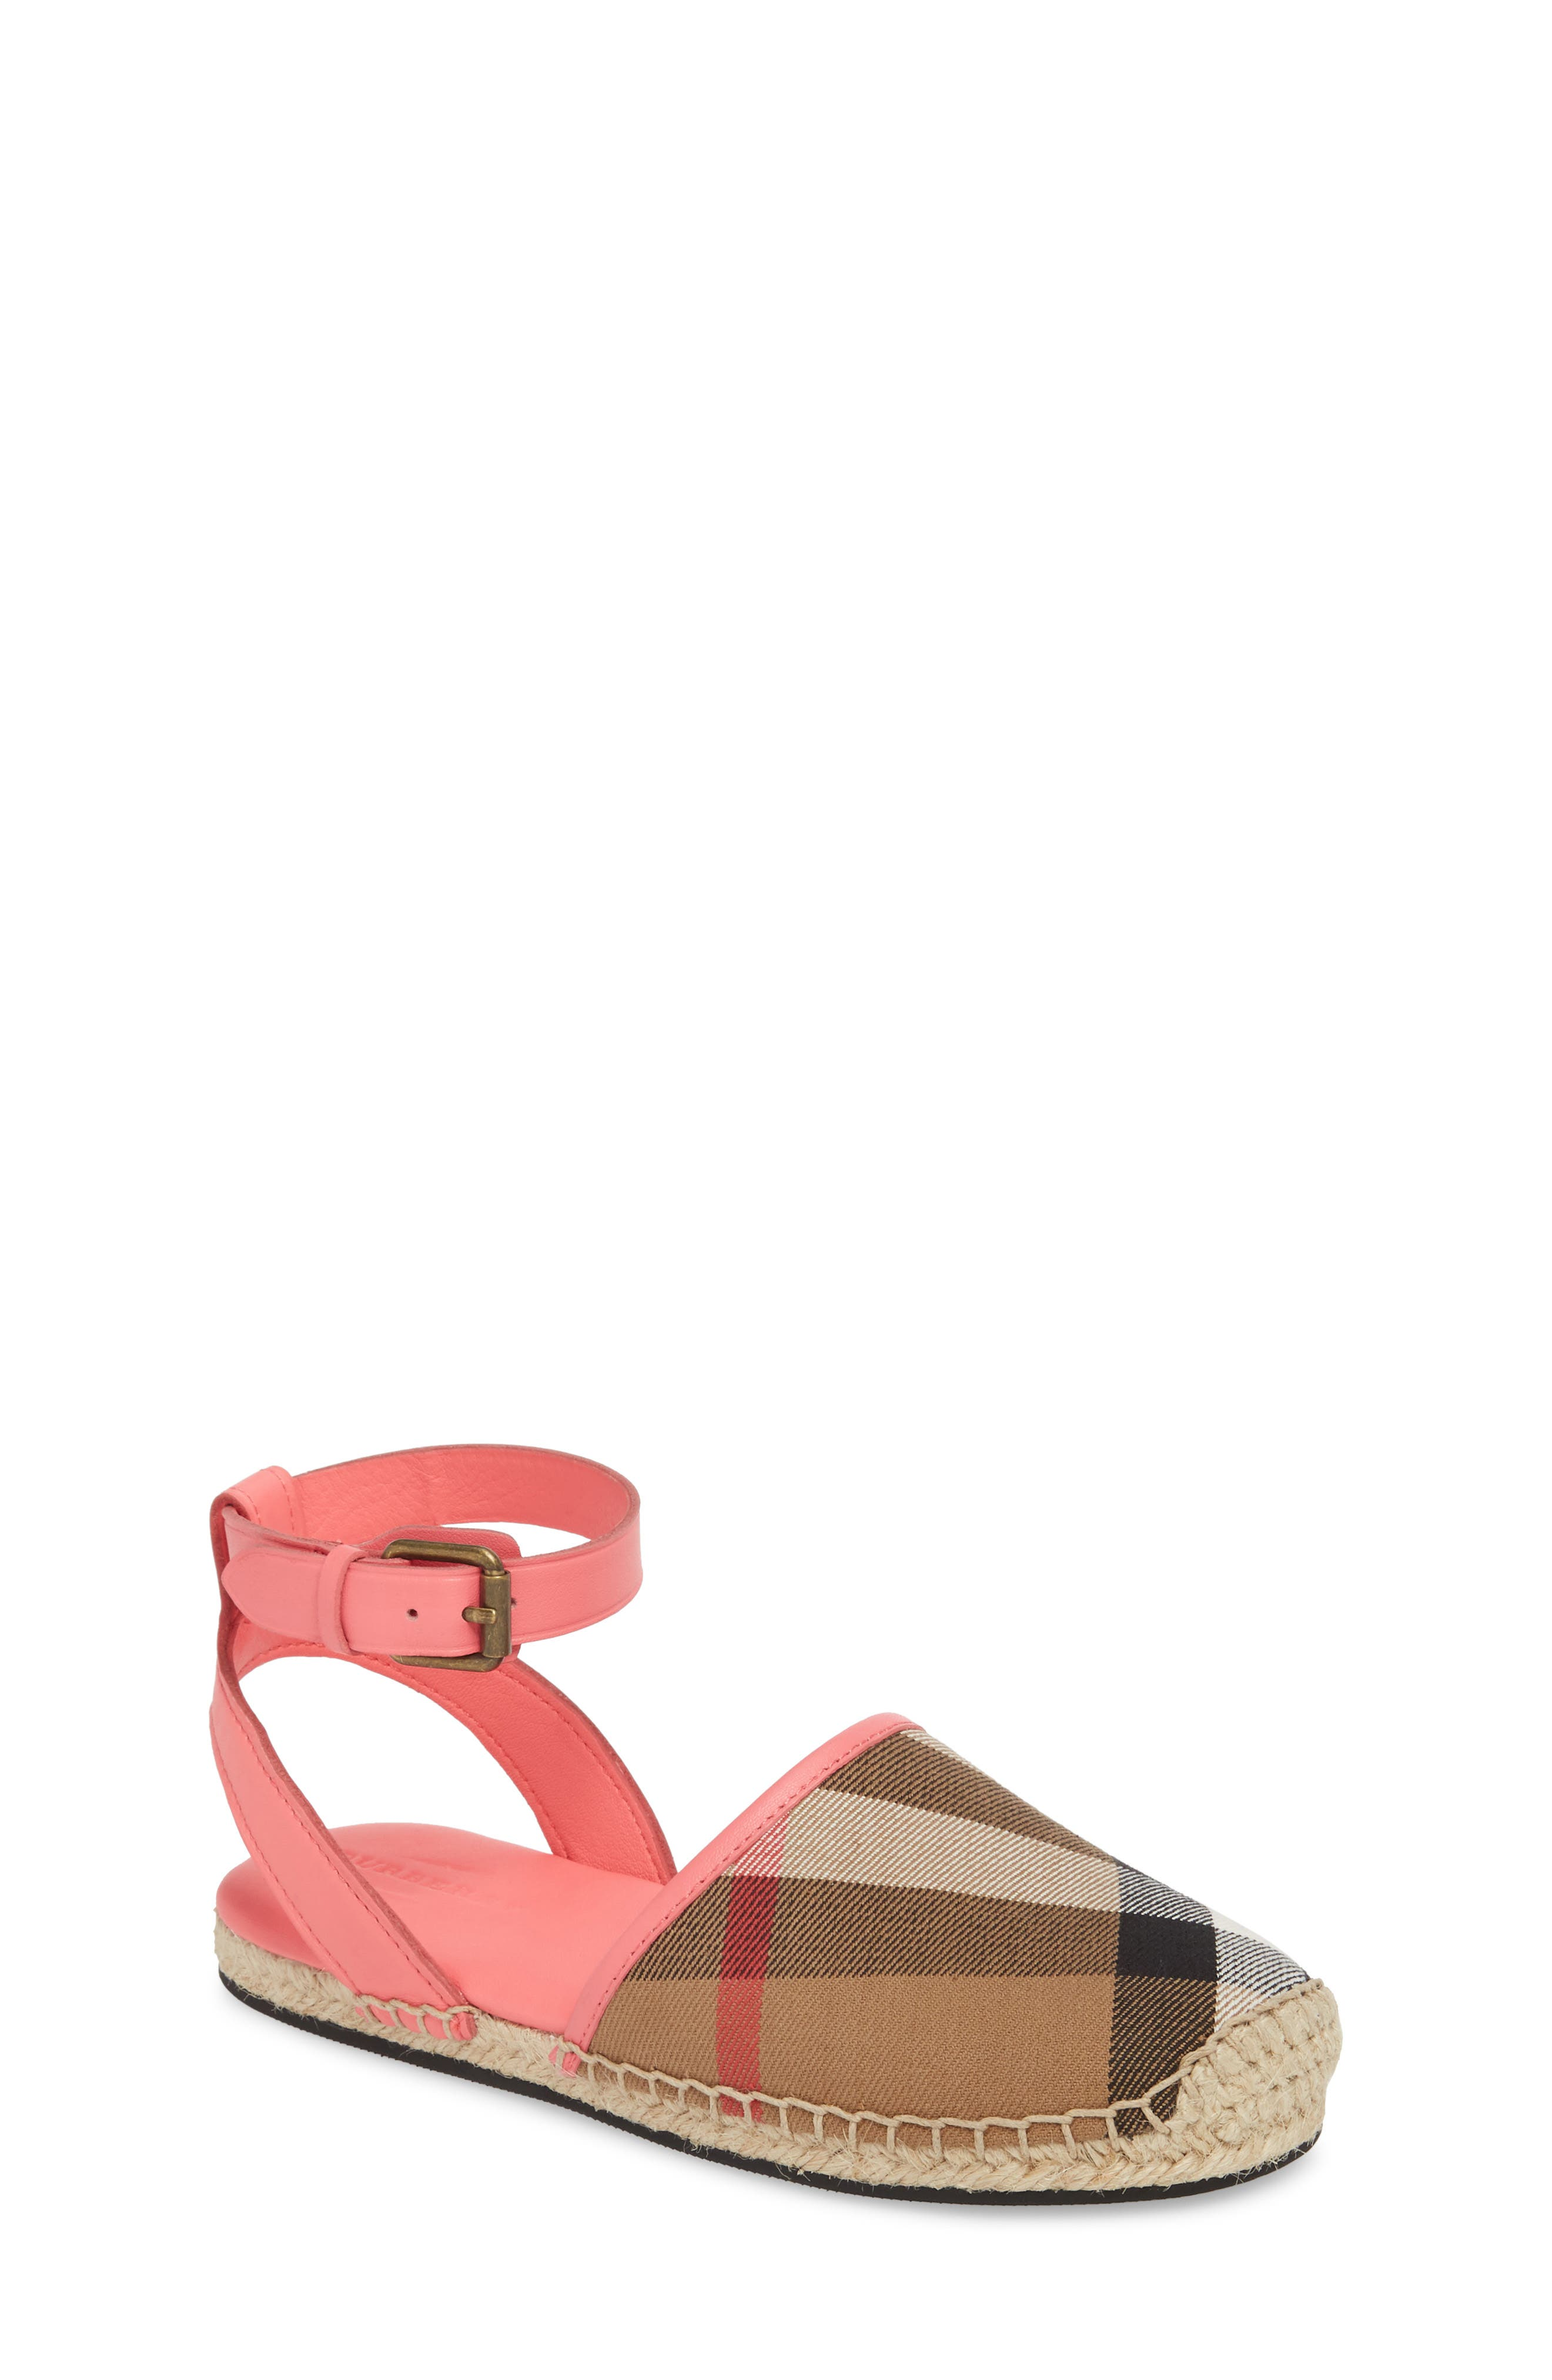 New Perth Espadrille Sandal,                             Main thumbnail 1, color,                             Bright Peony Rose